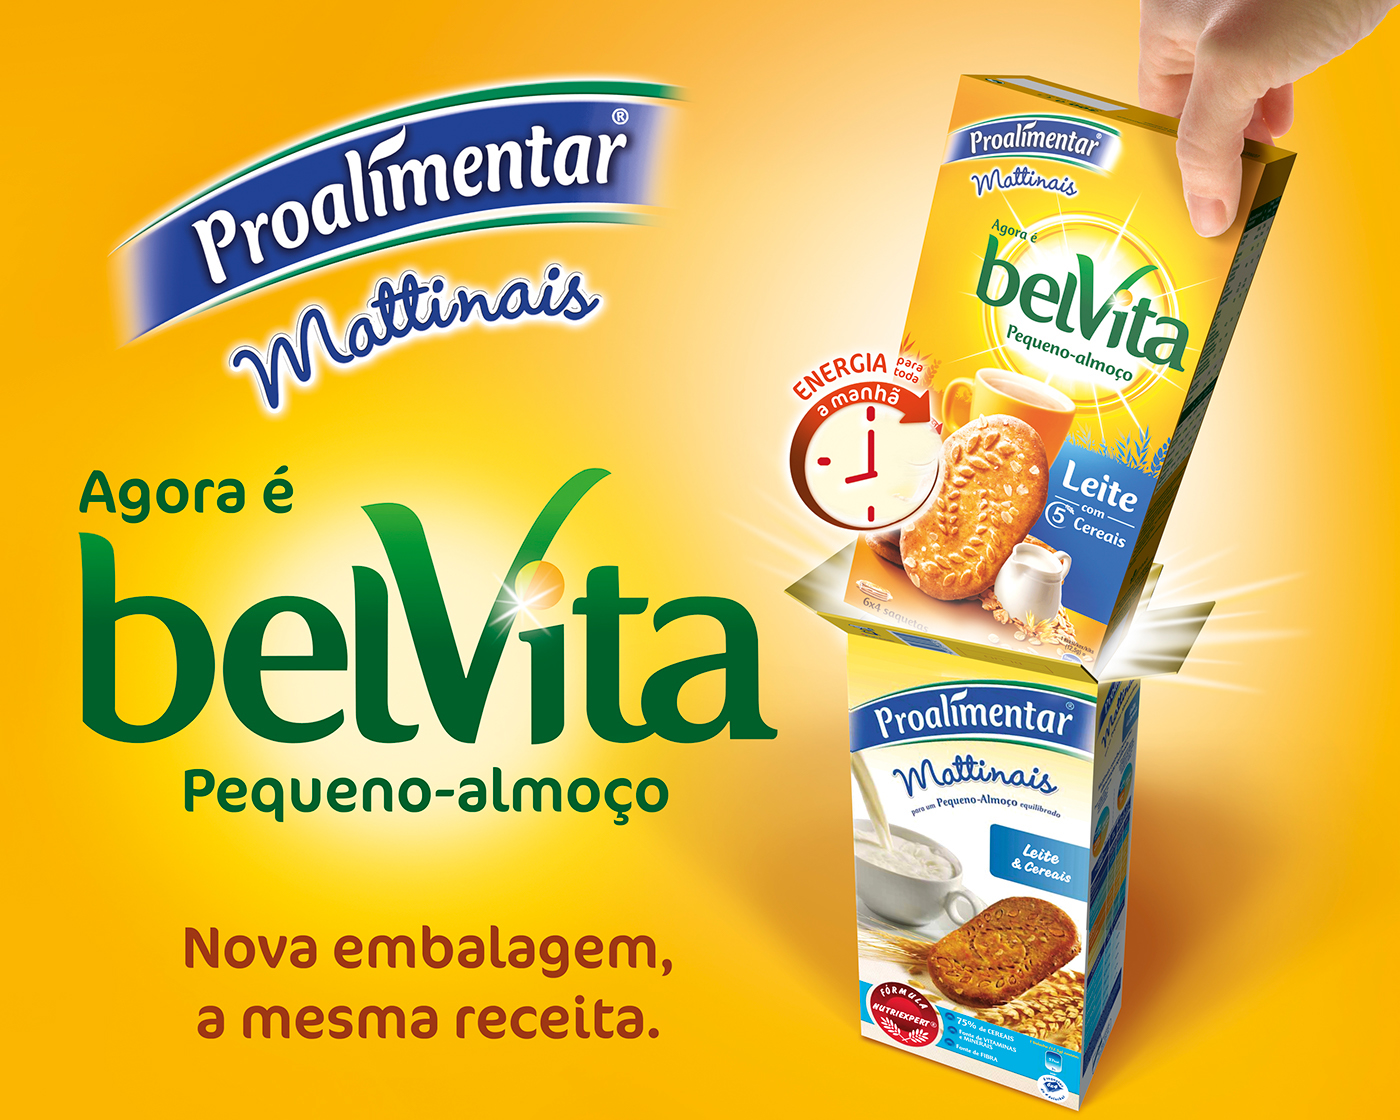 POS project for belVita rebranding